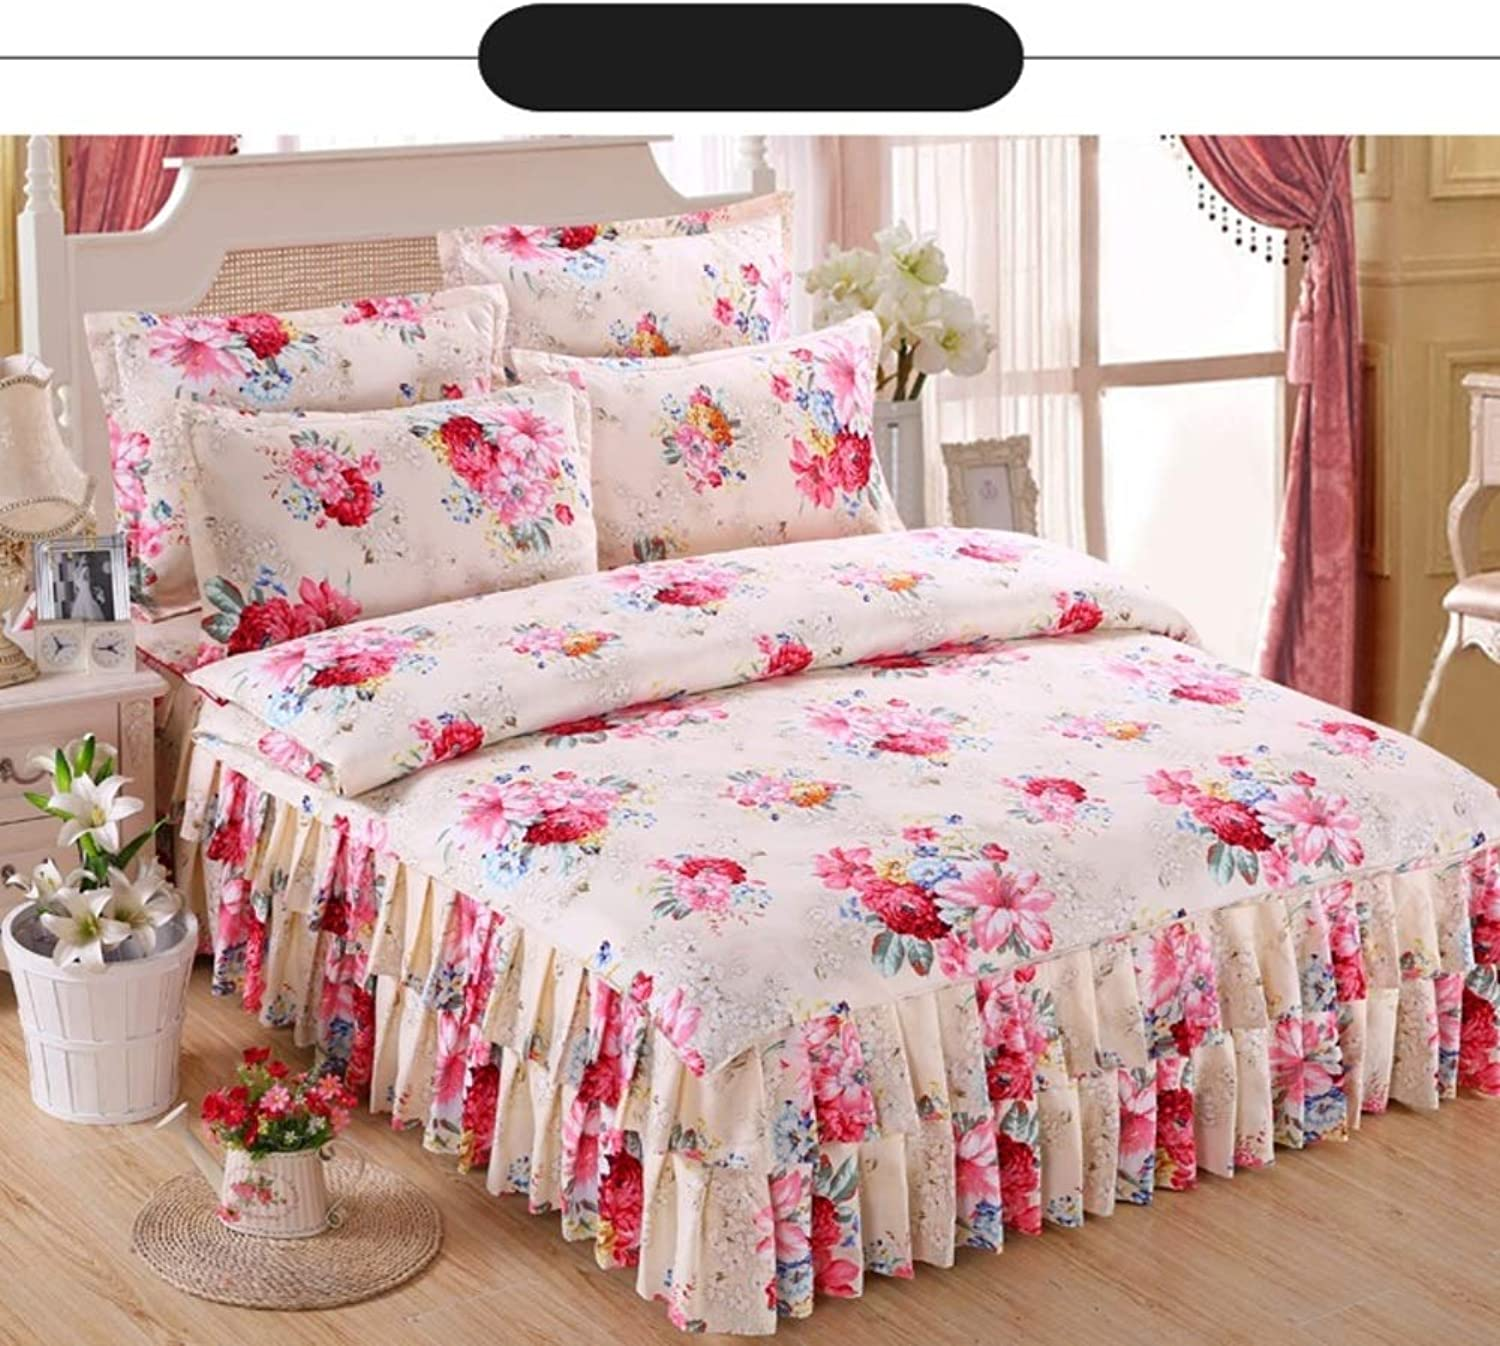 Cotton Sanding Bed Skirt,Wedding Four-Piece Thicked Quilt Cover 1.8x2.0m2x2.2 Meters Bed Cover Type Big Red Eco-Friendly Pleated Bed Skirt-H 180x200cm(71x79inch)